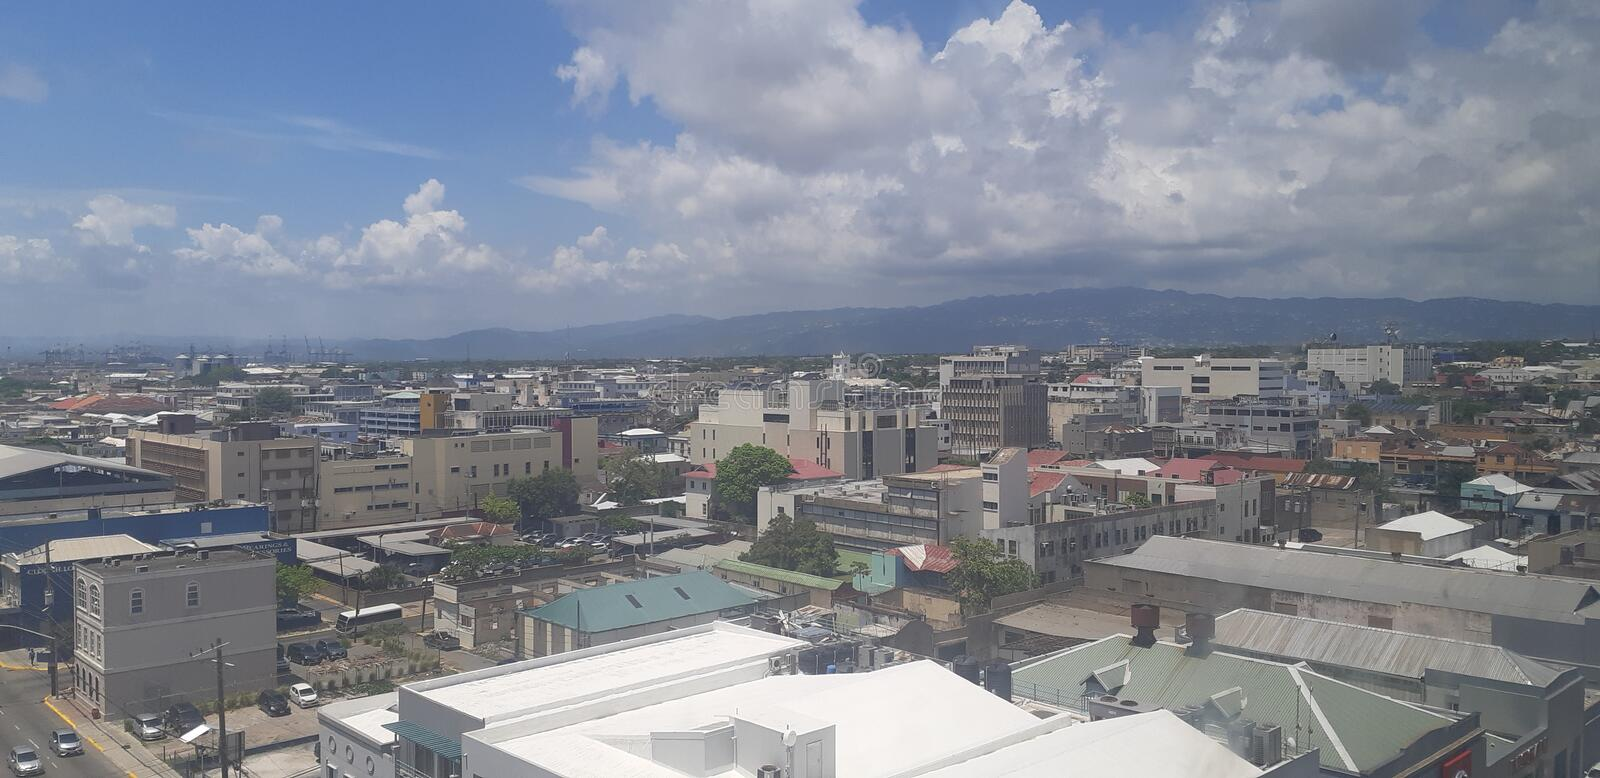 Kingston Jamaica stock image